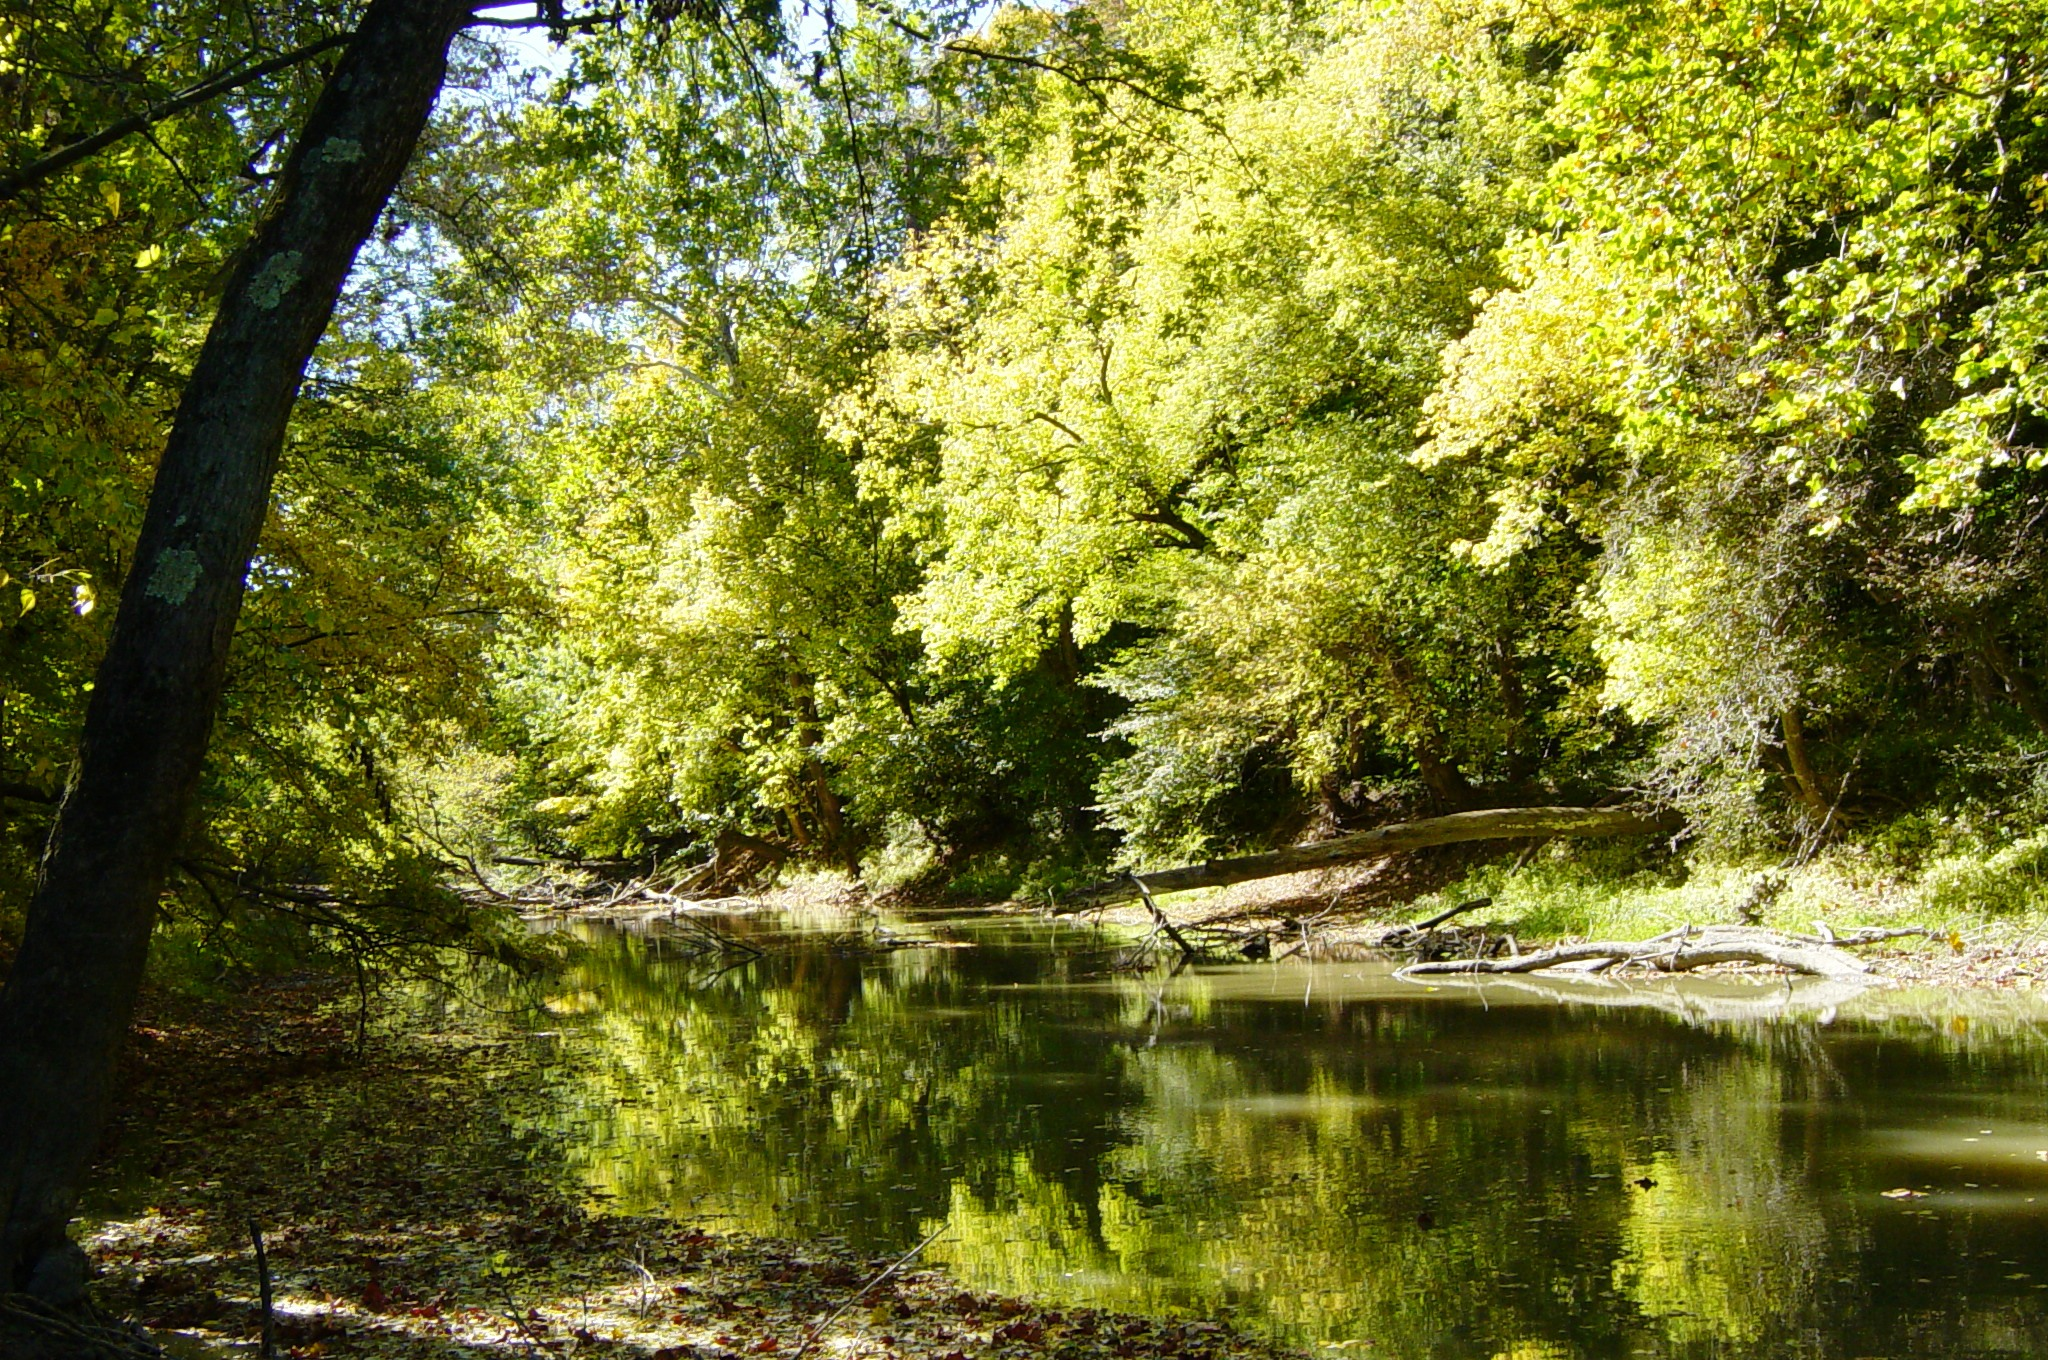 Description Tiffin River at Goll Woods State Nature Preserve in Ohio